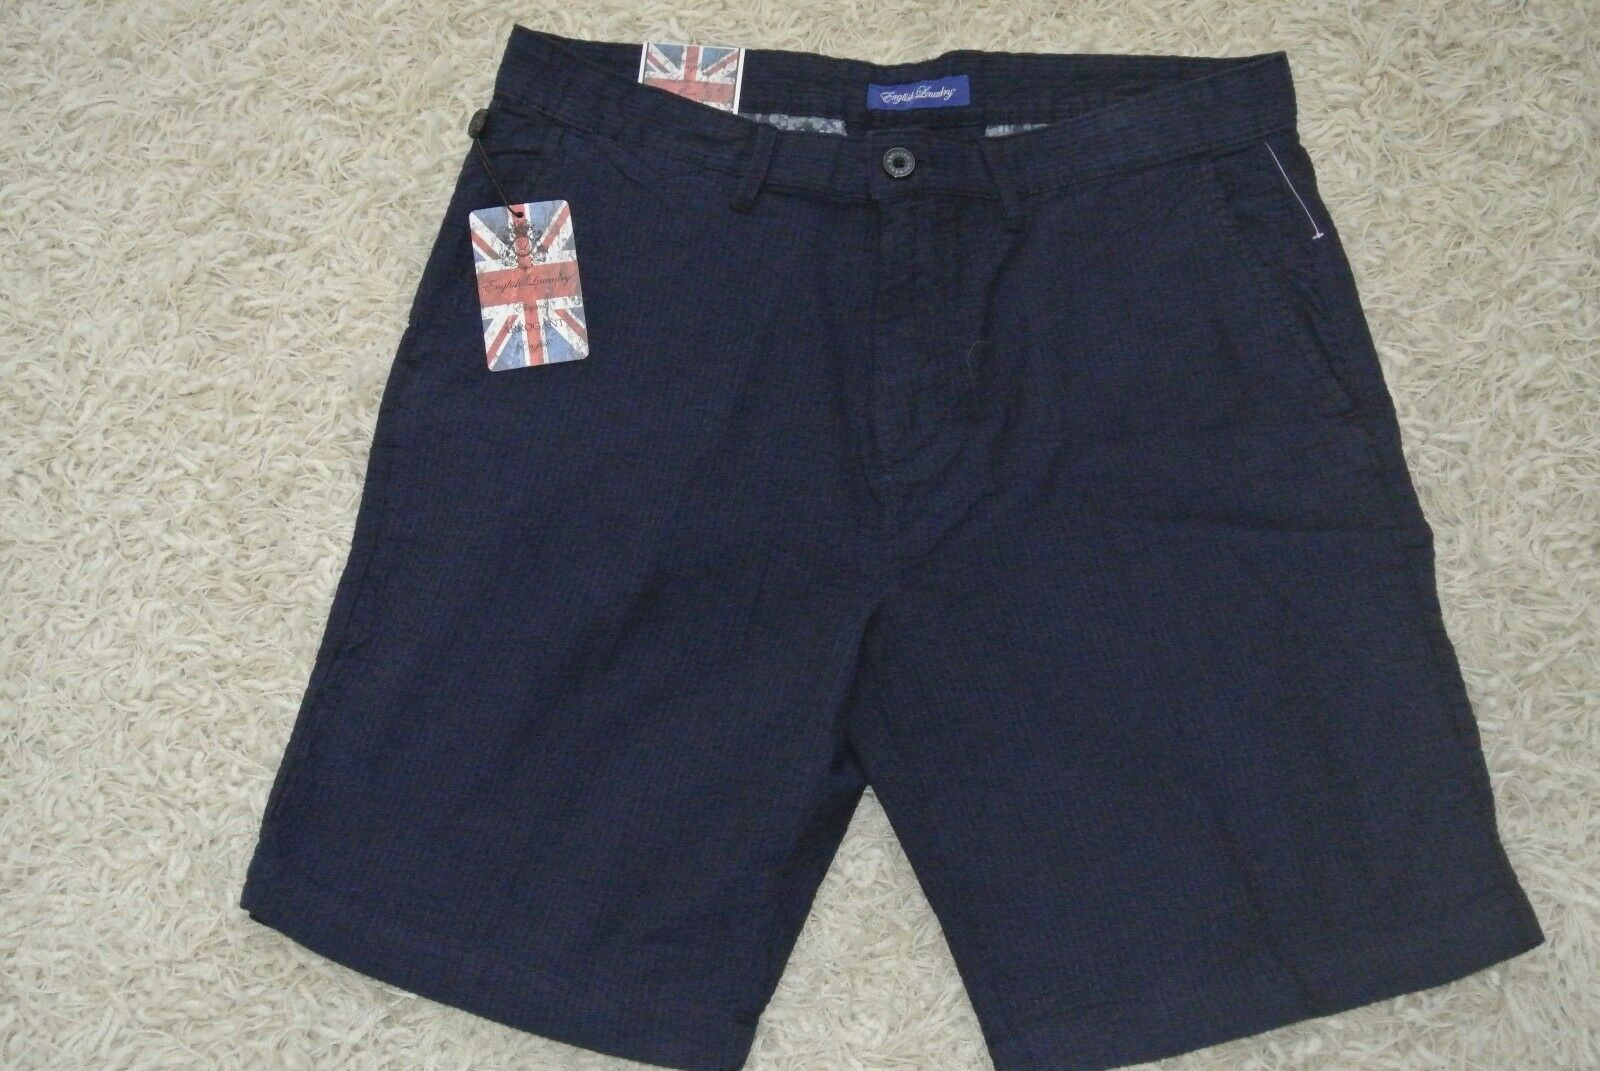 ENGLISH LAUNDRY Shorts 34 NWT CLASSIC FIT 9  Inseam-STRIPED NIGHT SKY blueES